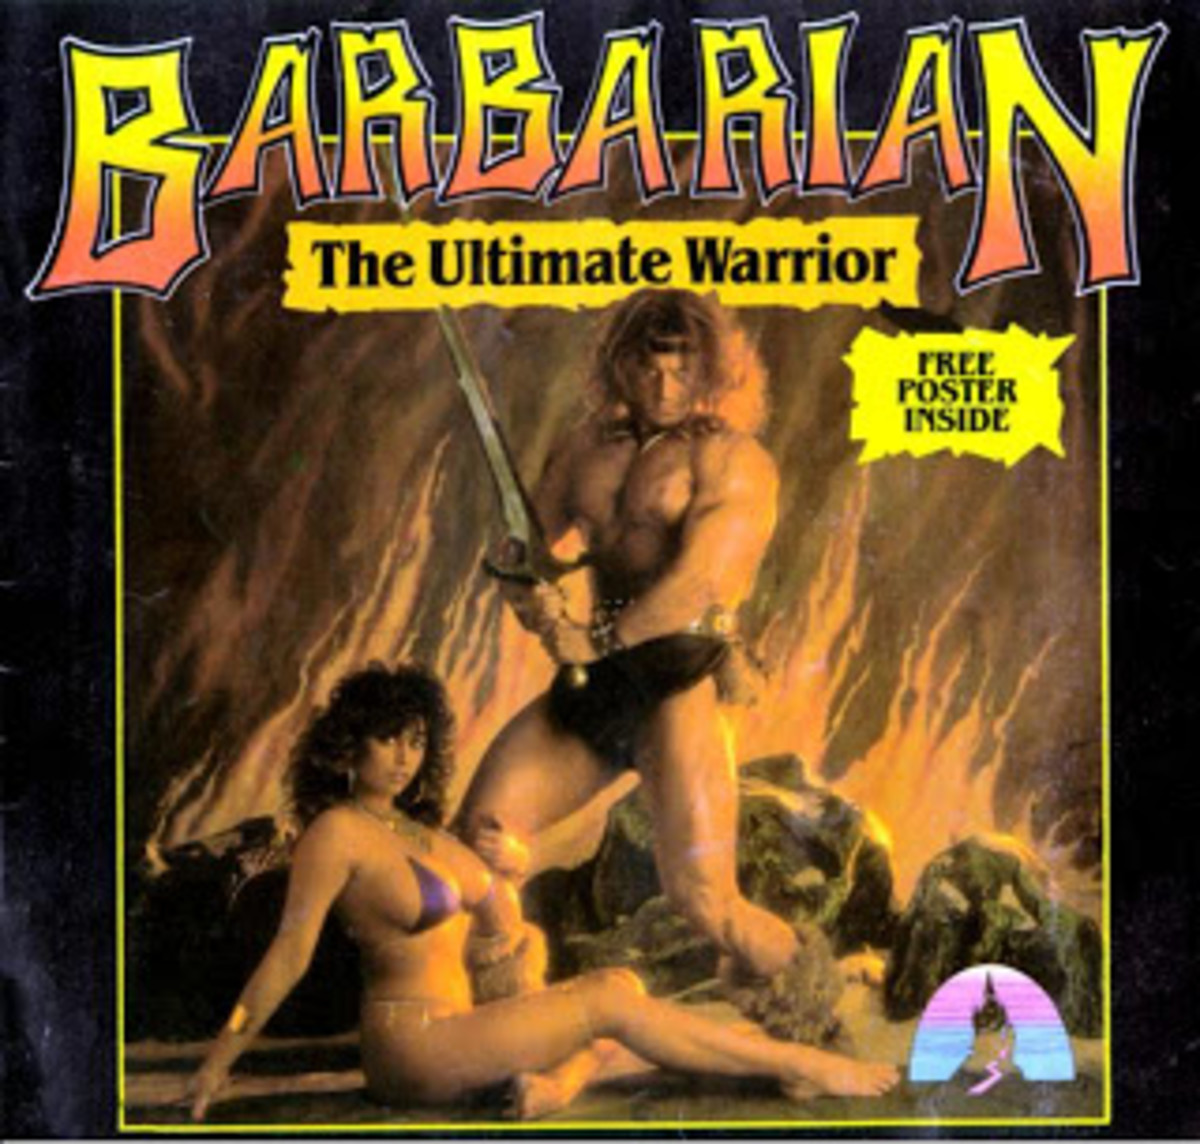 Michael Van Wijk and Maria Whittaker were on the front cover of Barbarian on the ZX Spectrum